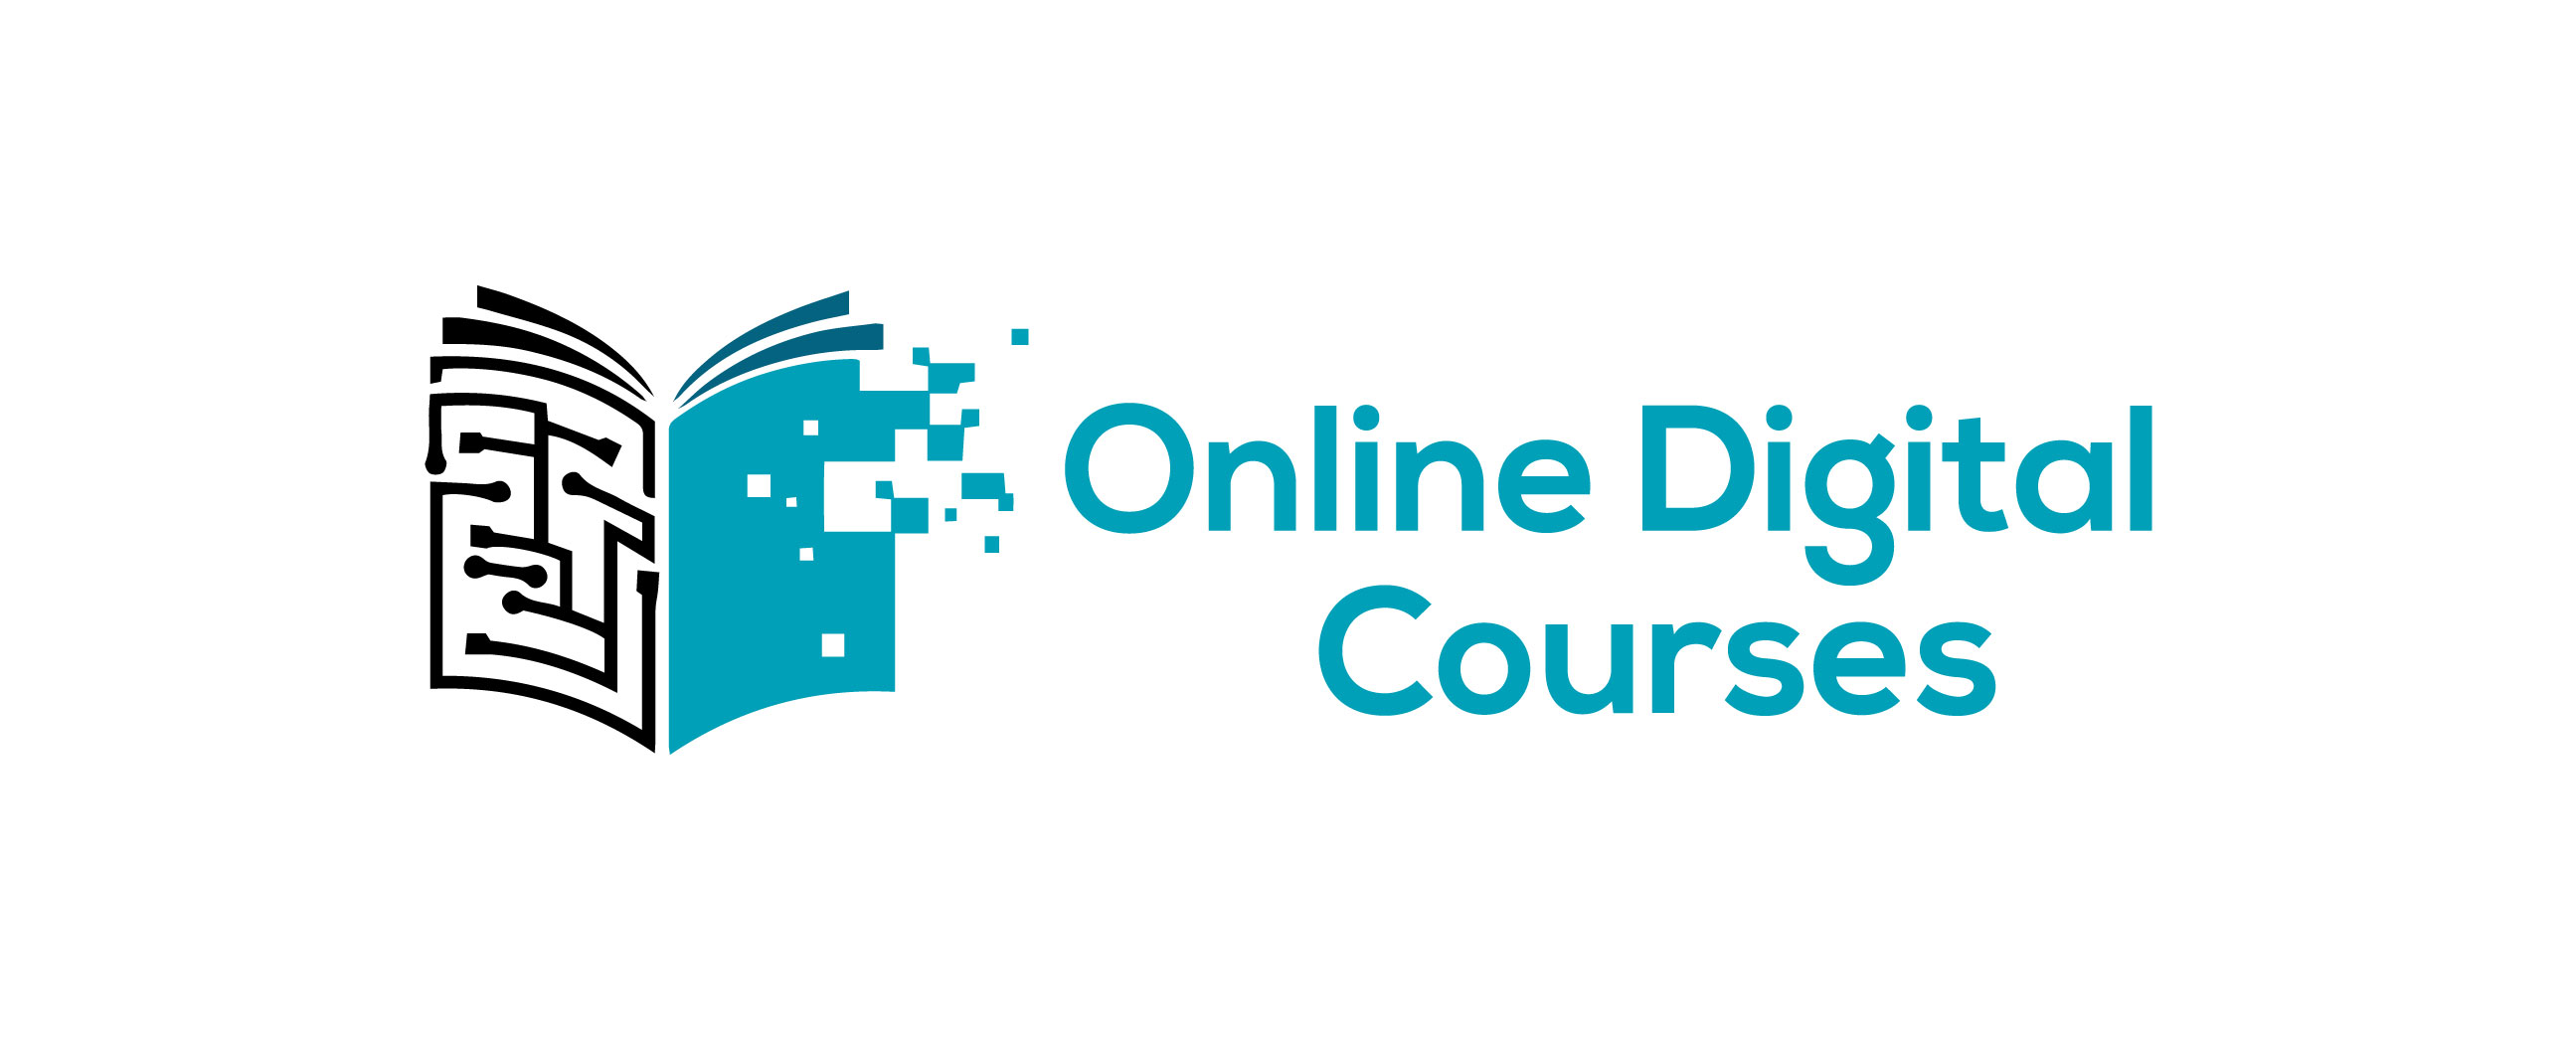 Online Digital Courses